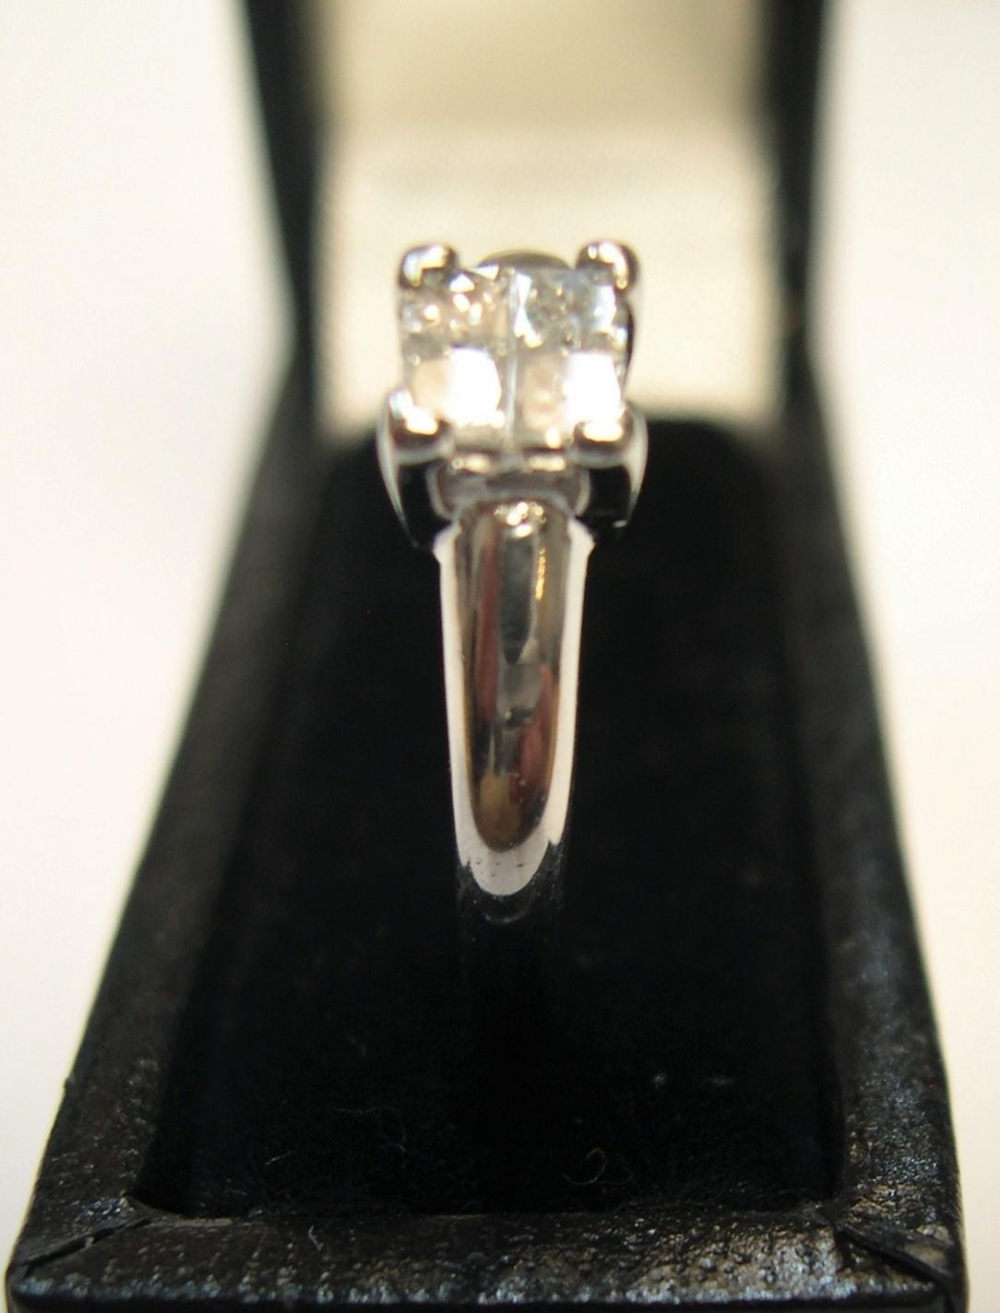 18ct white gold & diamond ring with 4 princess cut diamonds, rubbed marks. Approx 2.7 grams gross, - Image 2 of 3